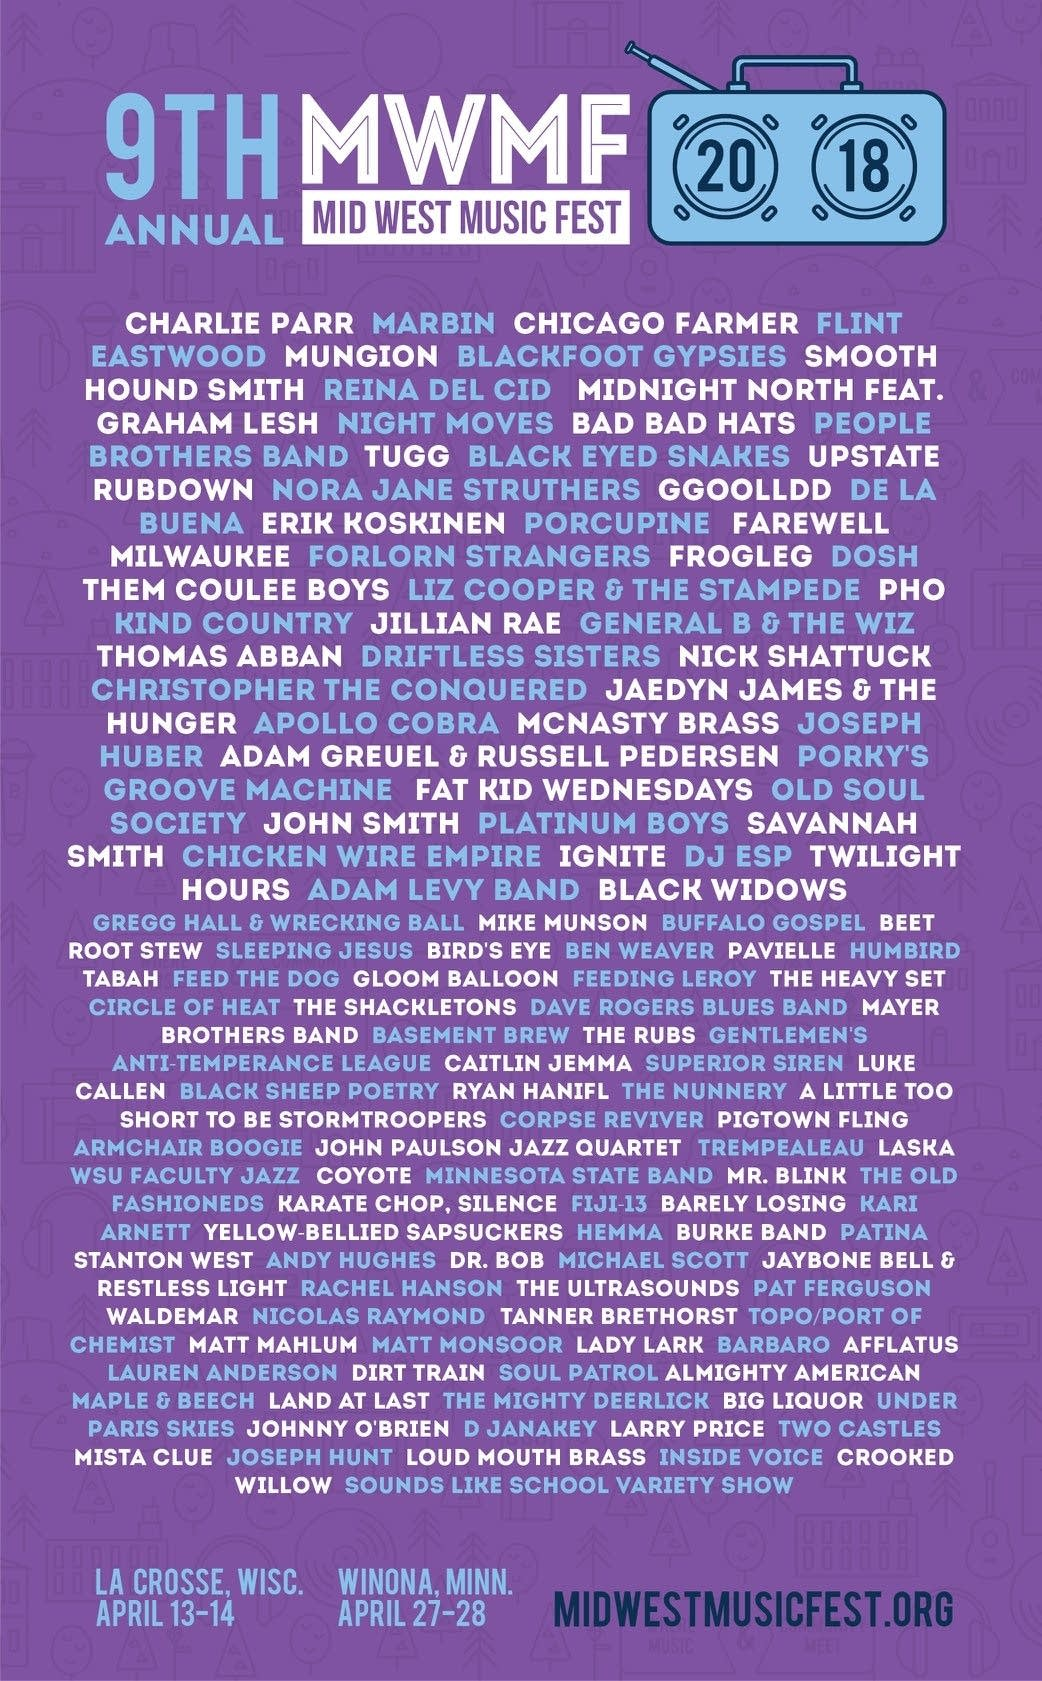 Mid West Music Fest 2018 poster.